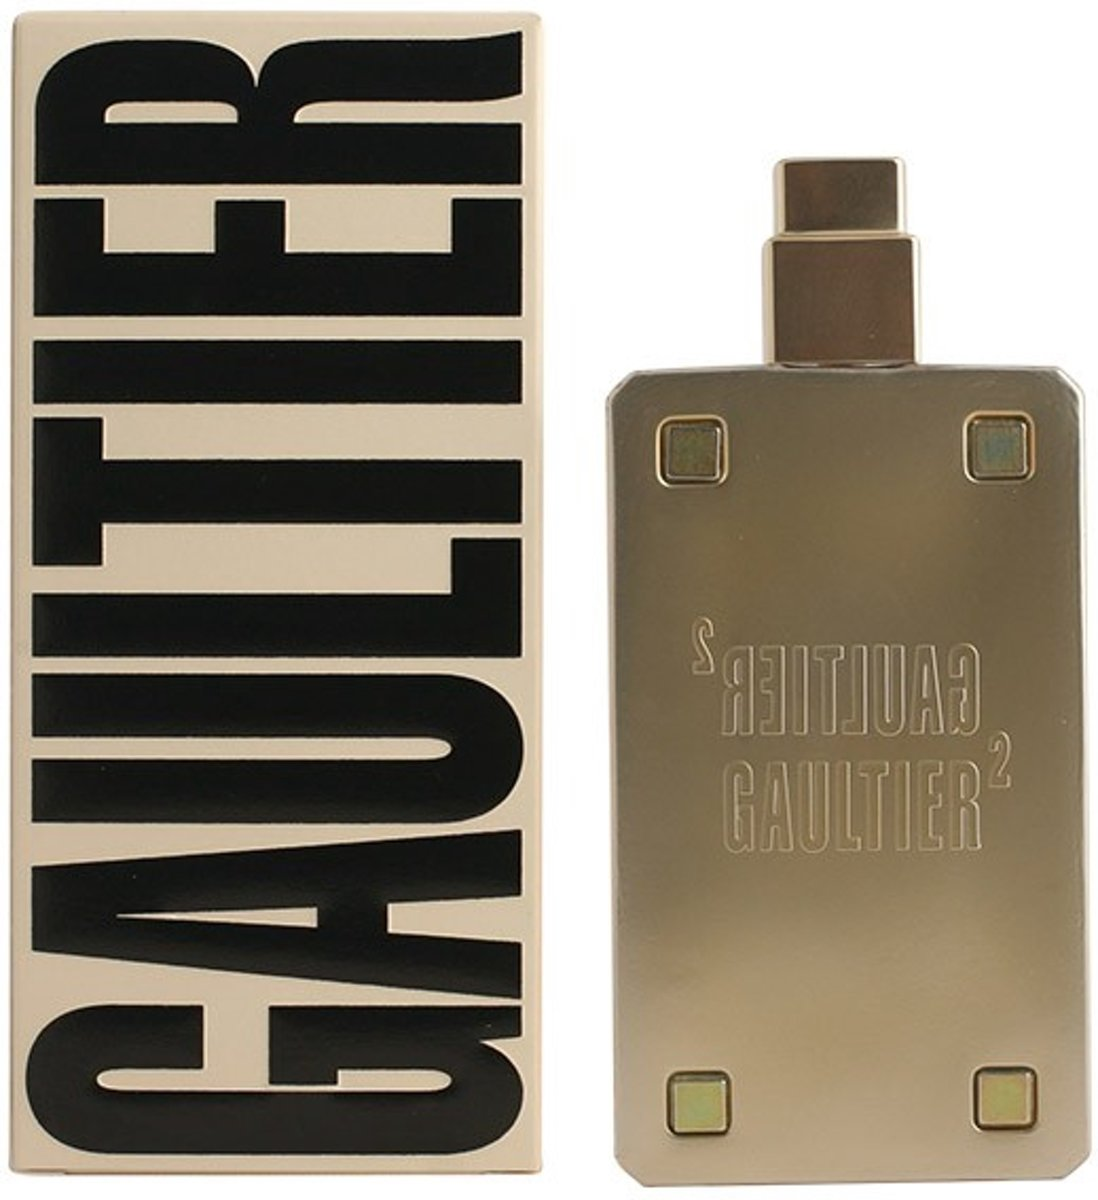 Jean Paul Gaultier - GAULTIER 2 - eau de parfum - spray 120 ml